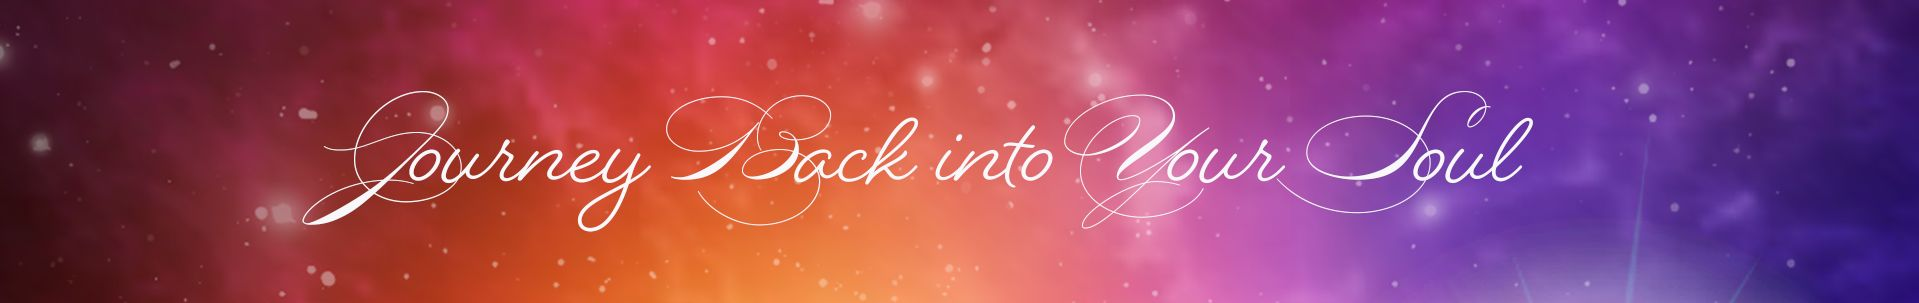 Journey back to your soul-wide-banner